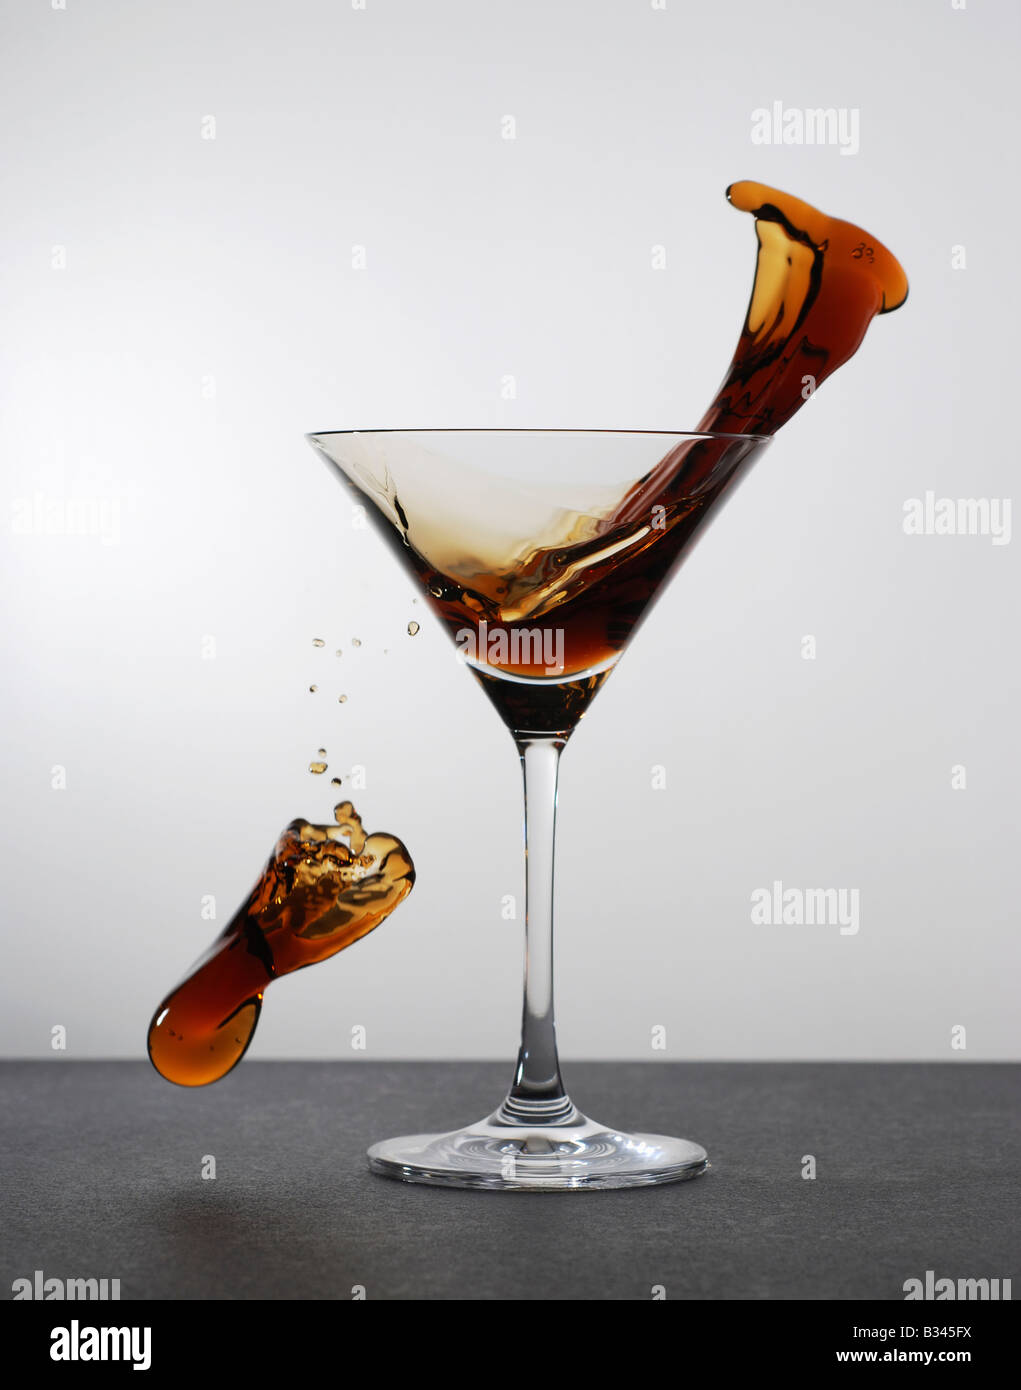 High speed splash of Coke Cola drink in a cocktail glass - Stock Image